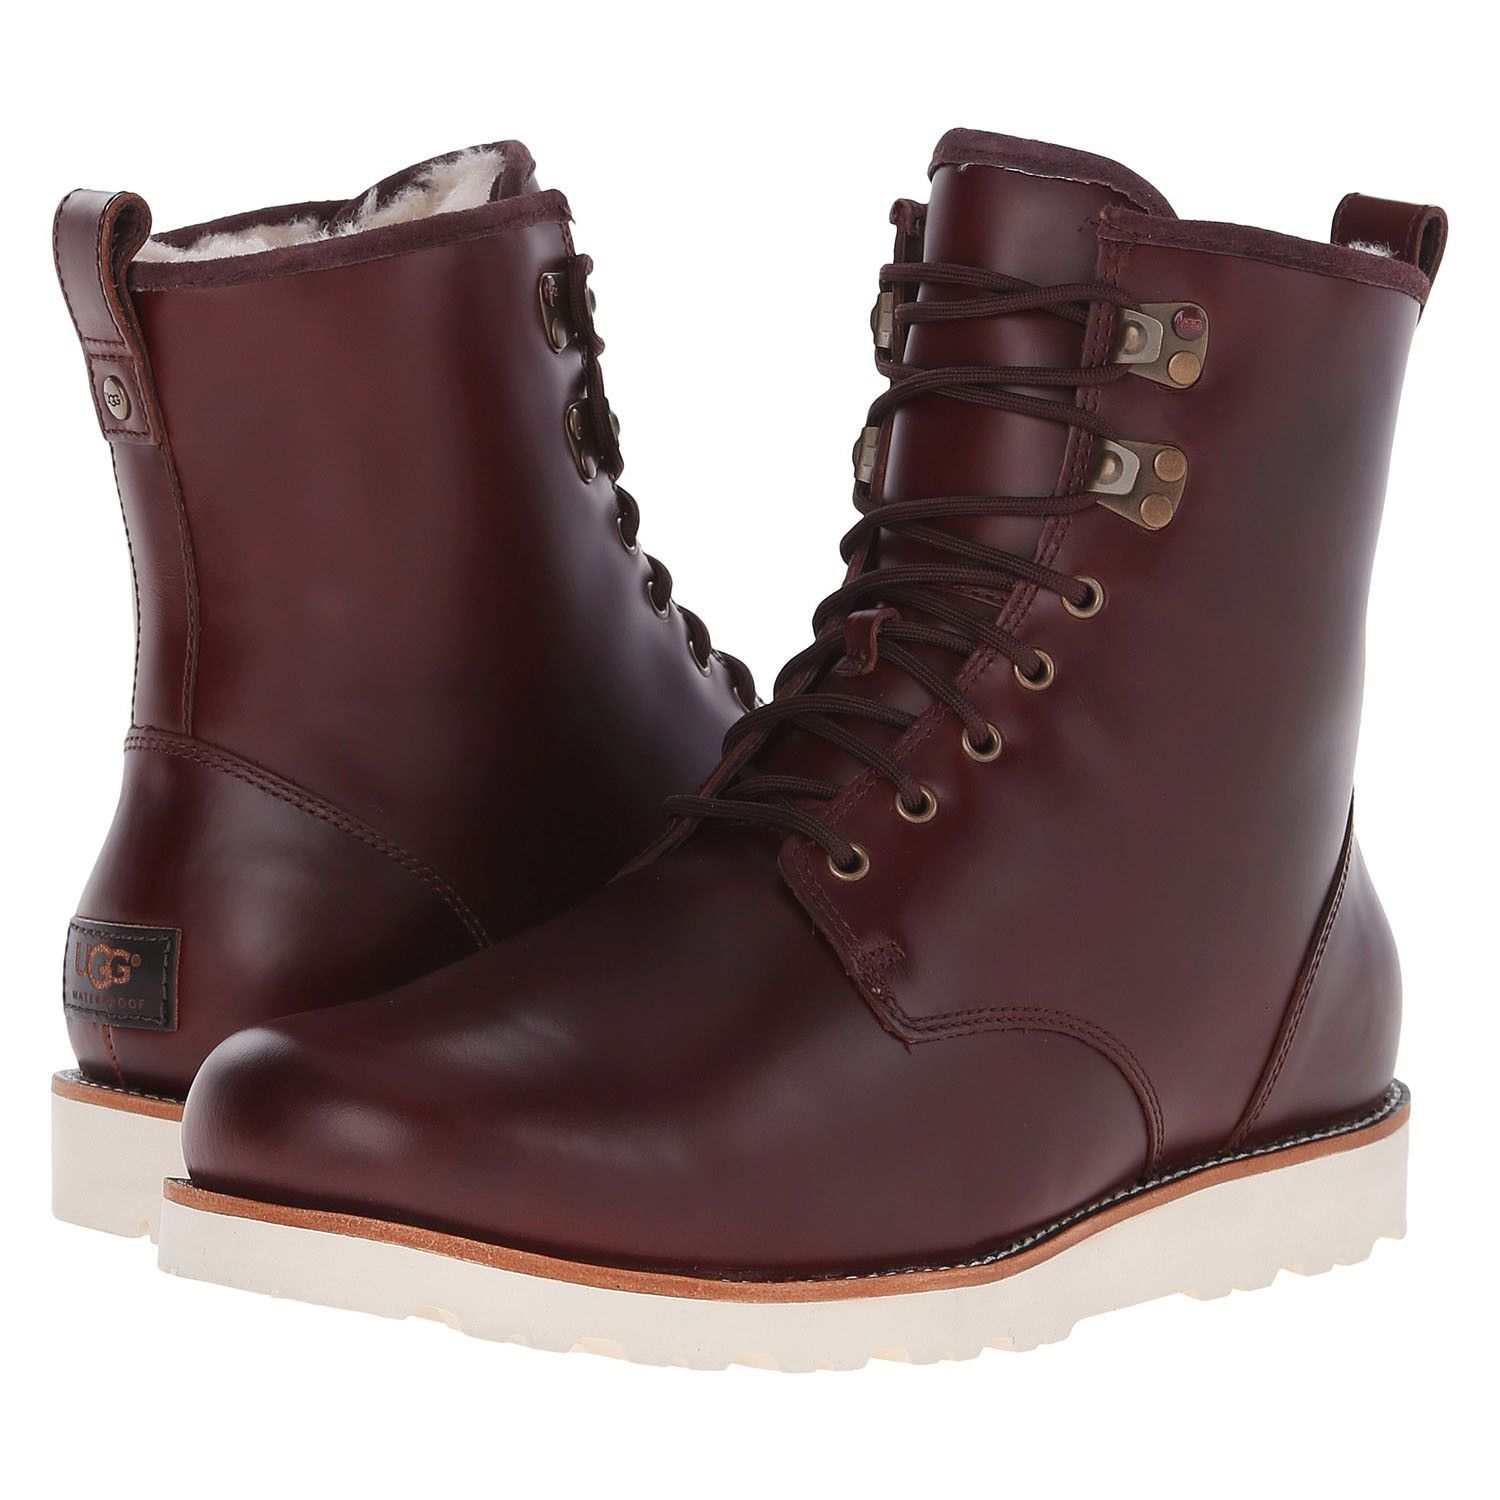 b0b81aea93e UGG Hannen TL Men | Cordovan (1008142) | Products | Ugg boots ...